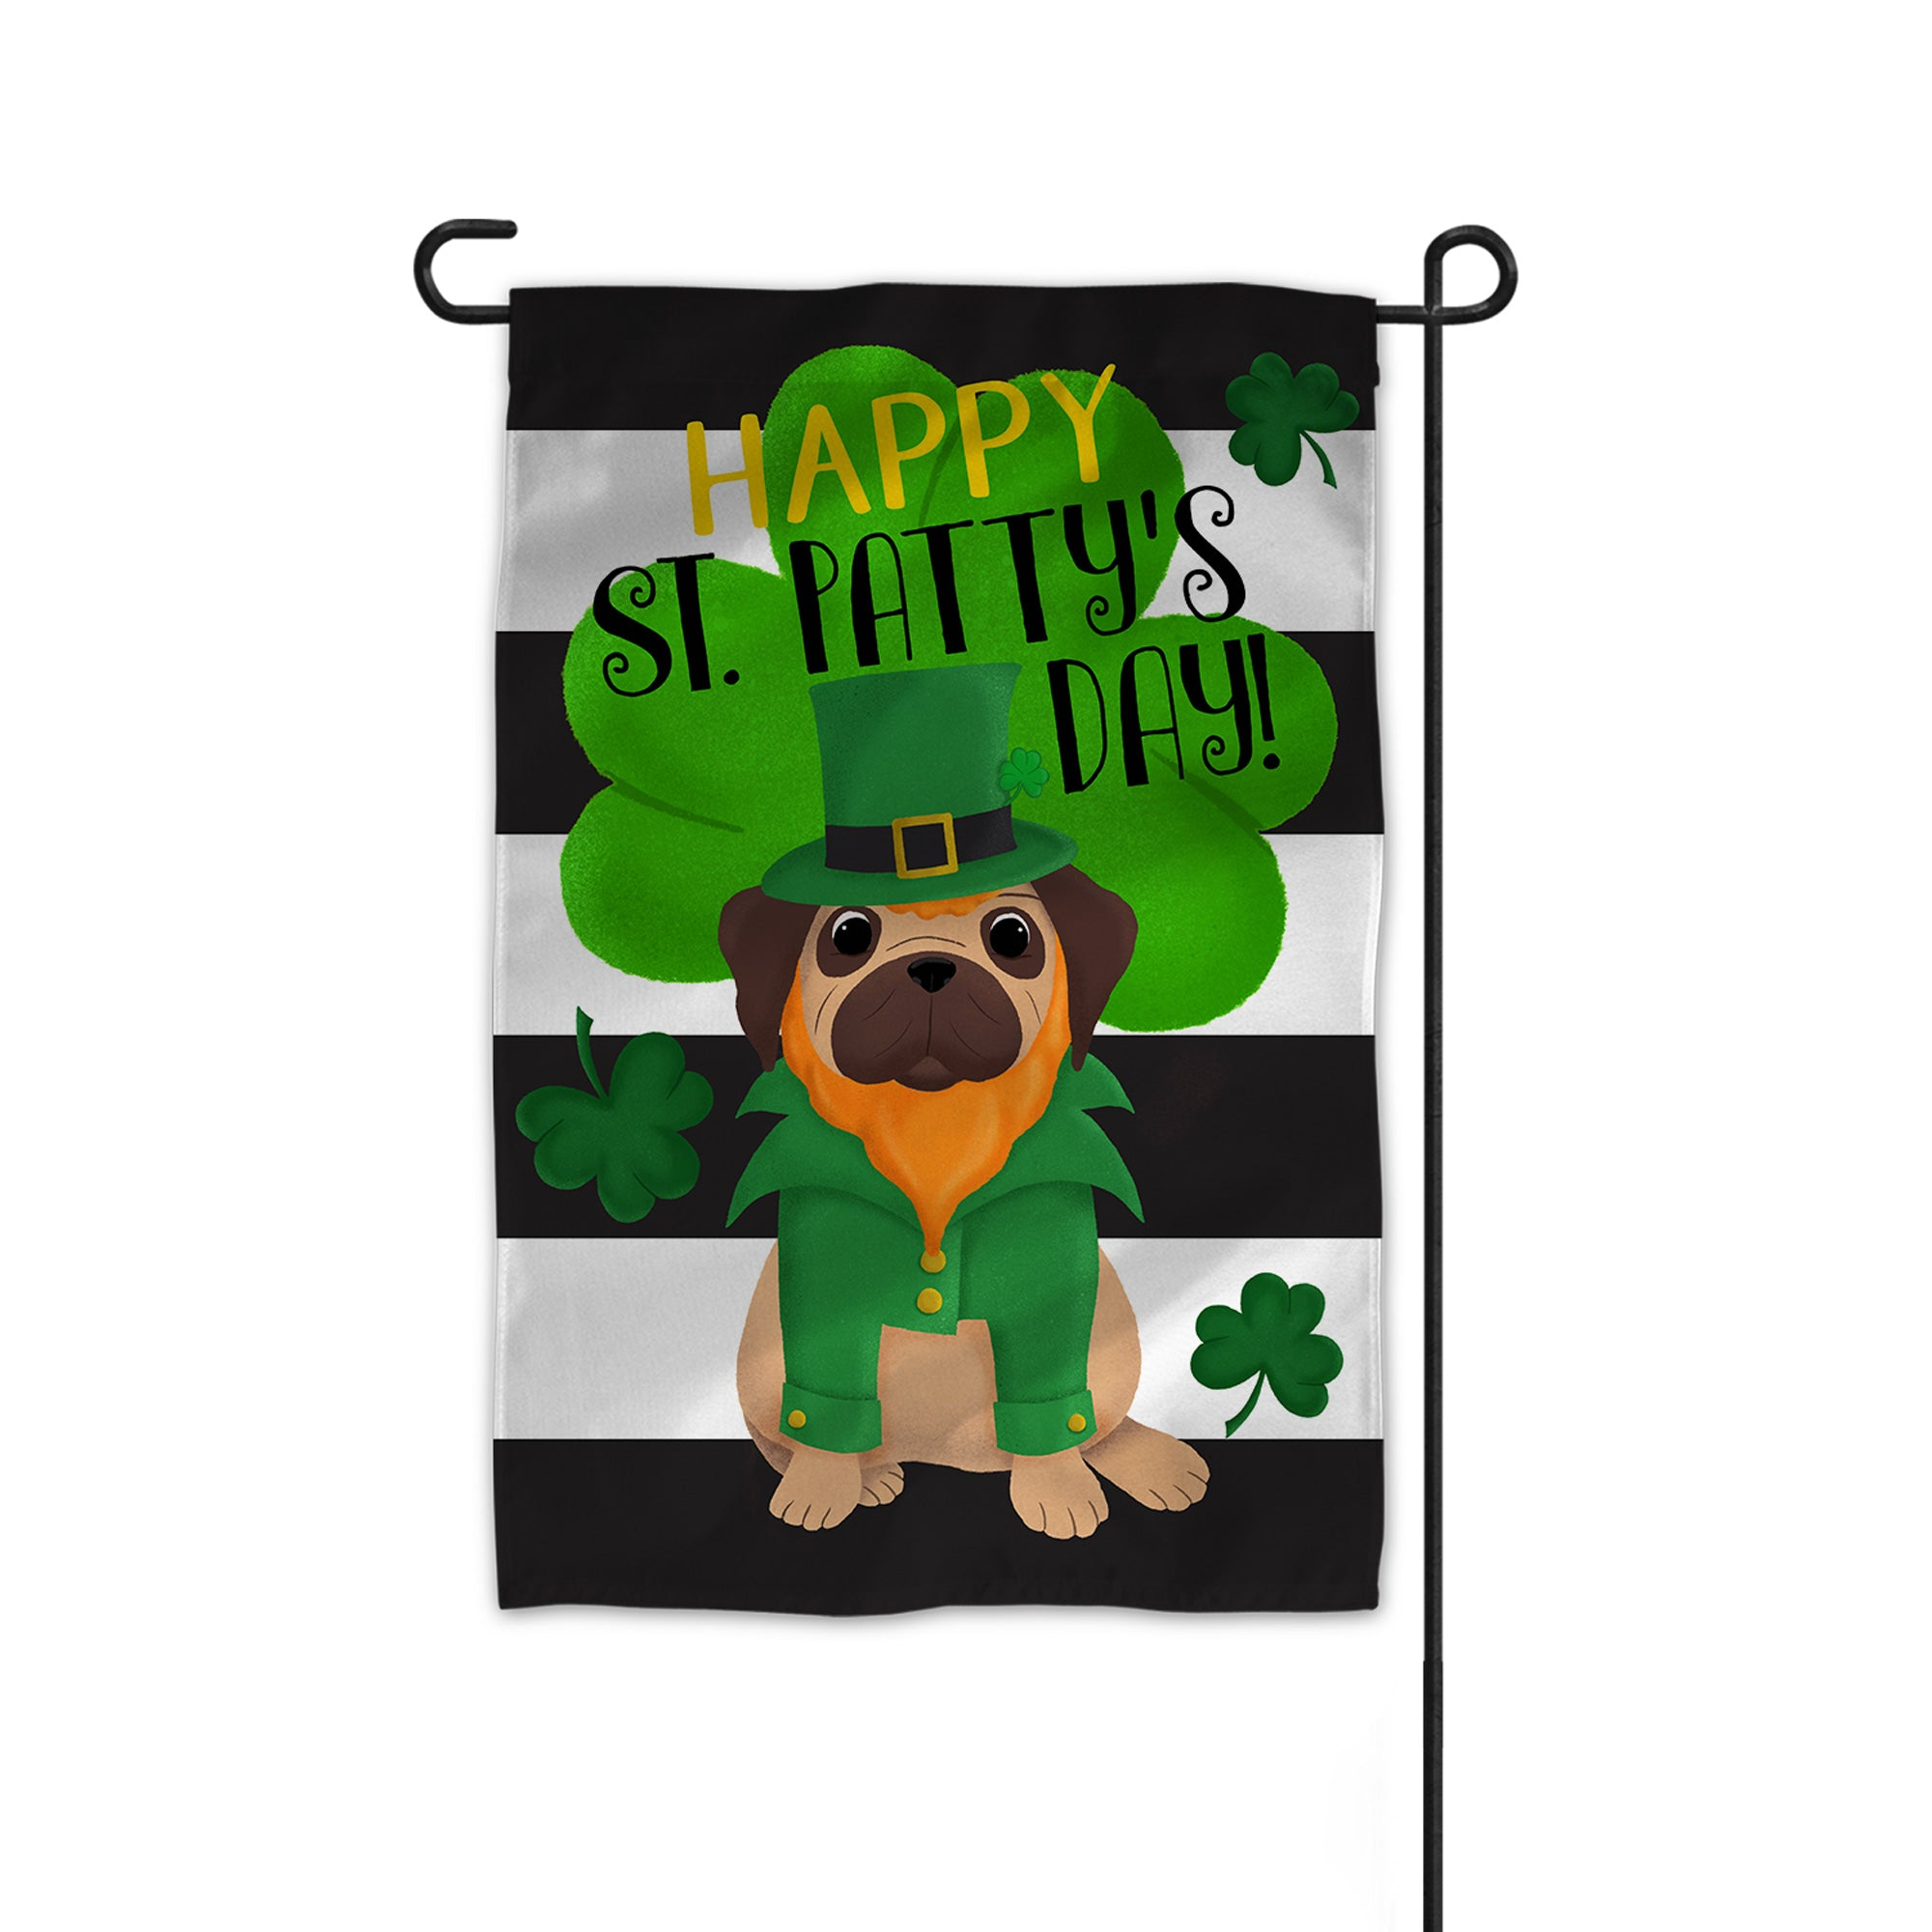 Pug St. Patrick's Day Garden Flag - My Treasured Gifts Co